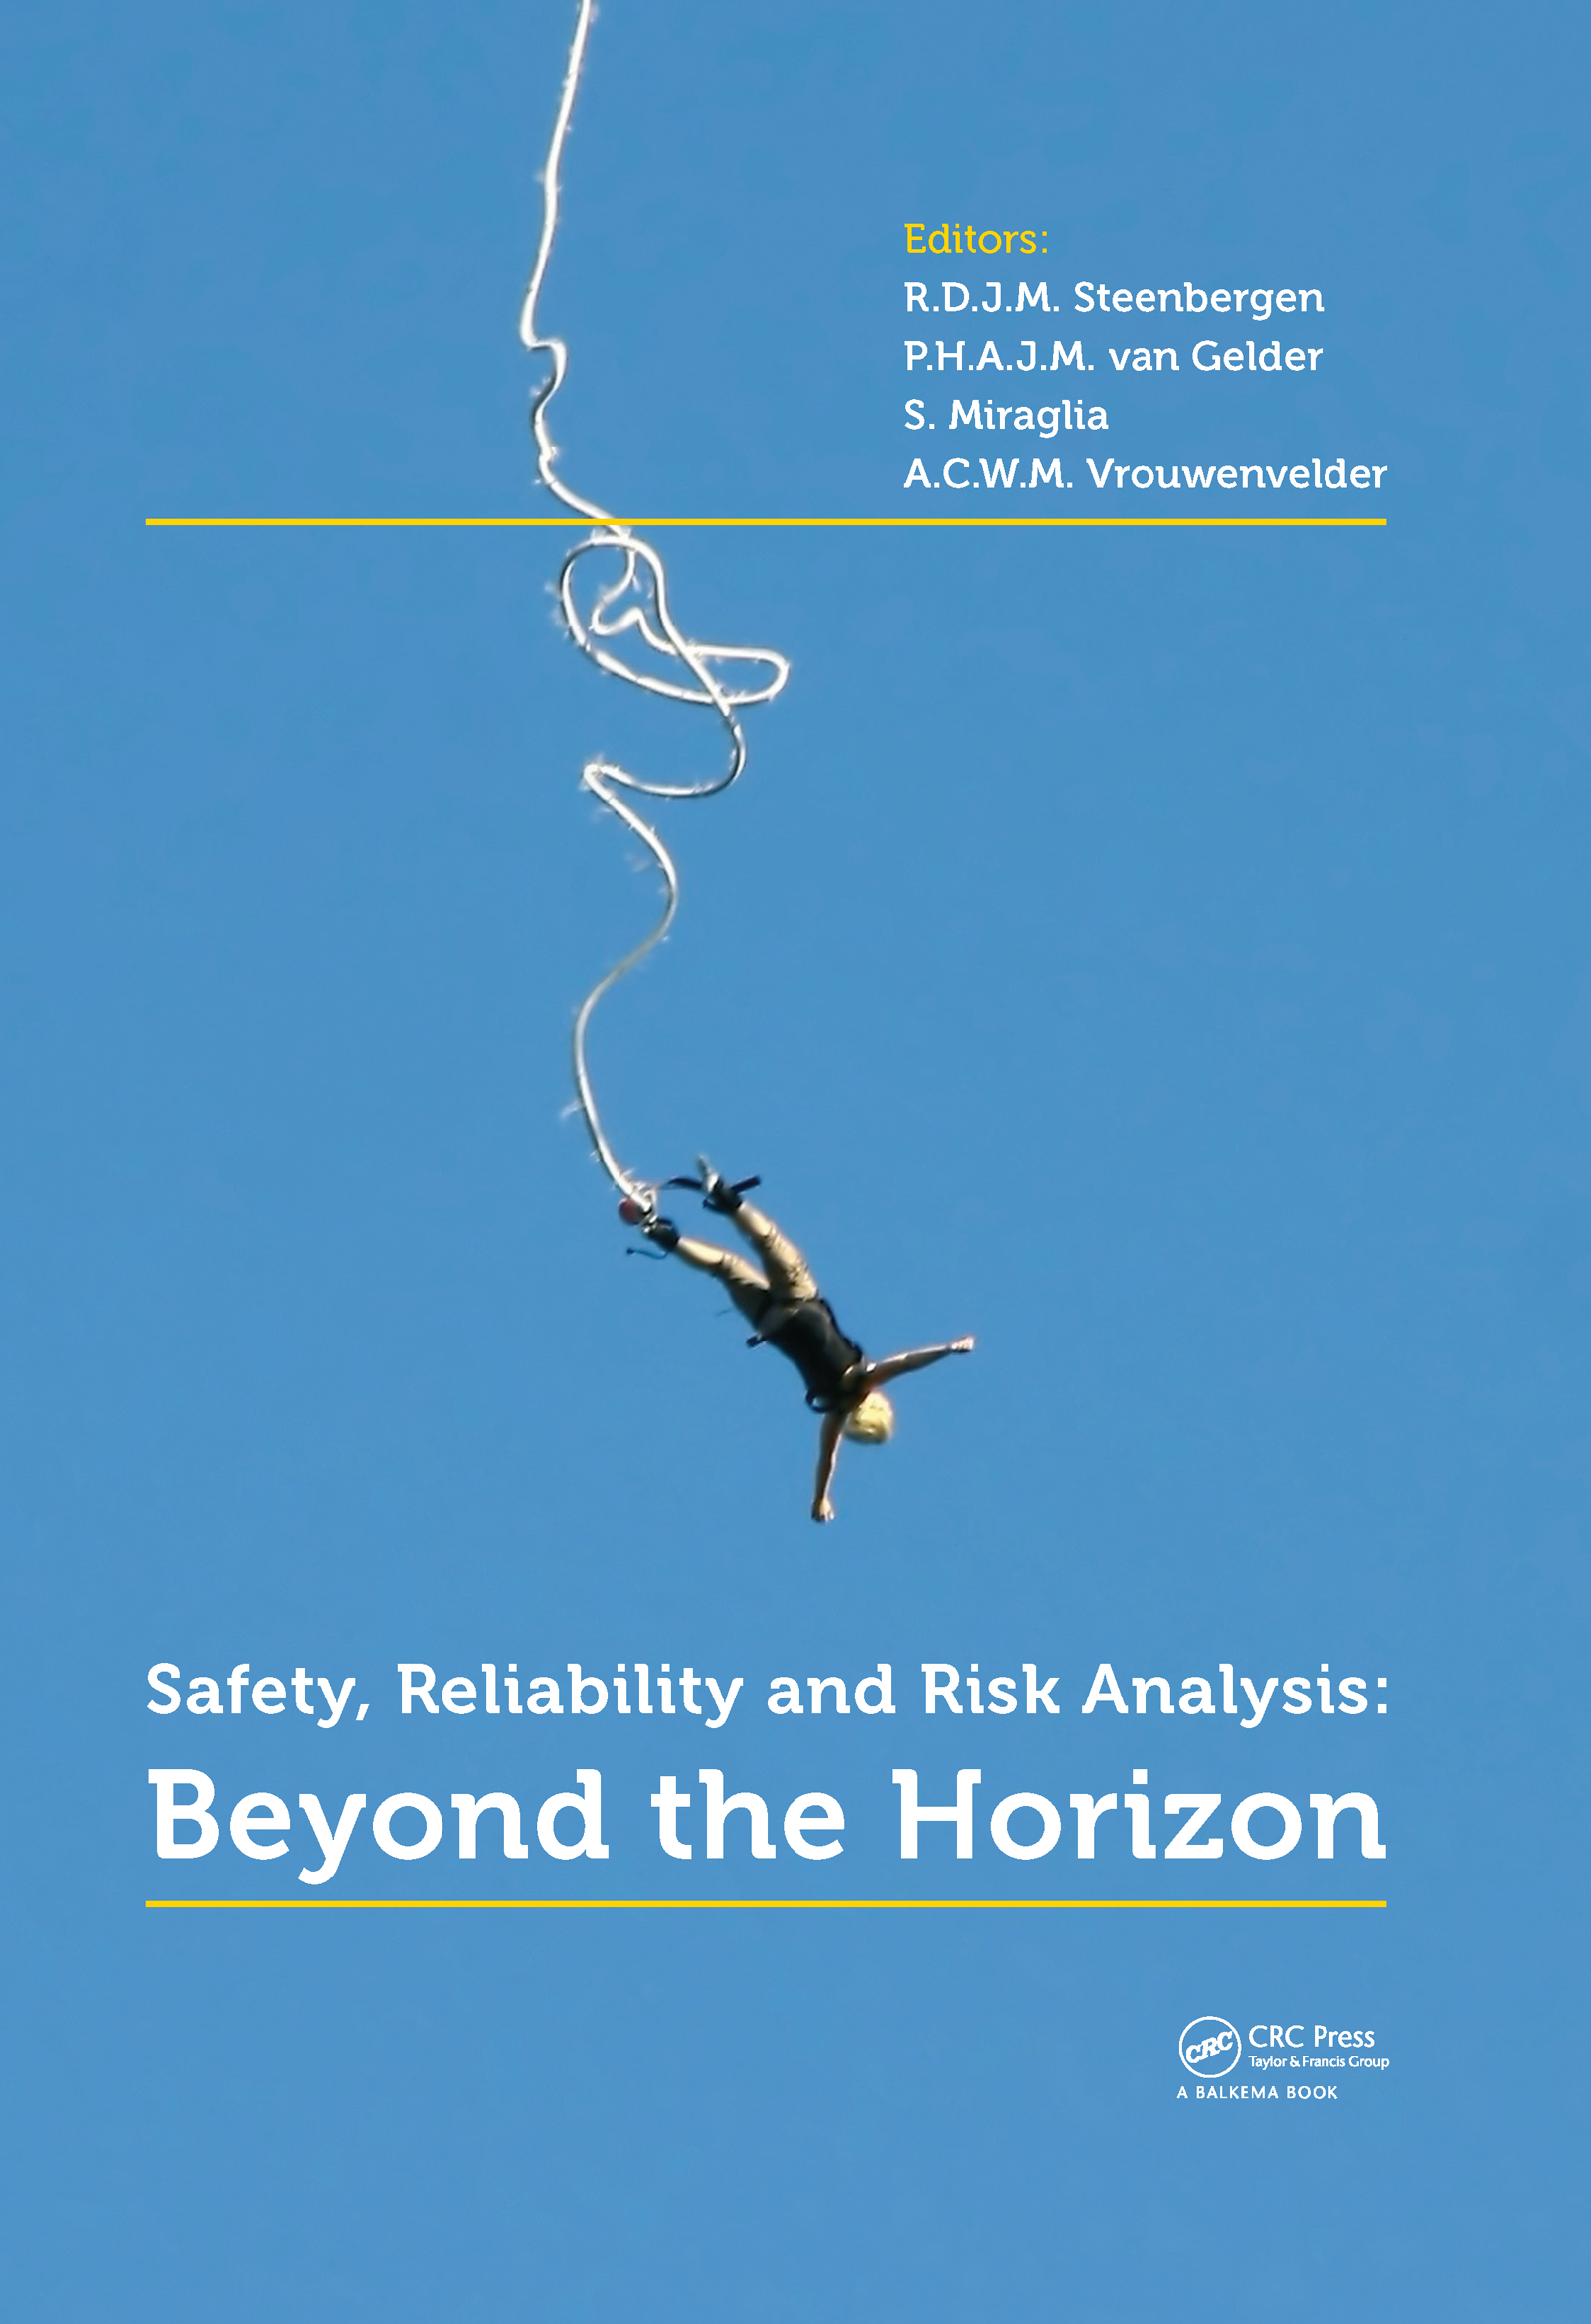 Safety, Reliability and Risk Analysis: Beyond the Horizon, 1st Edition (Pack - Book and CD) book cover